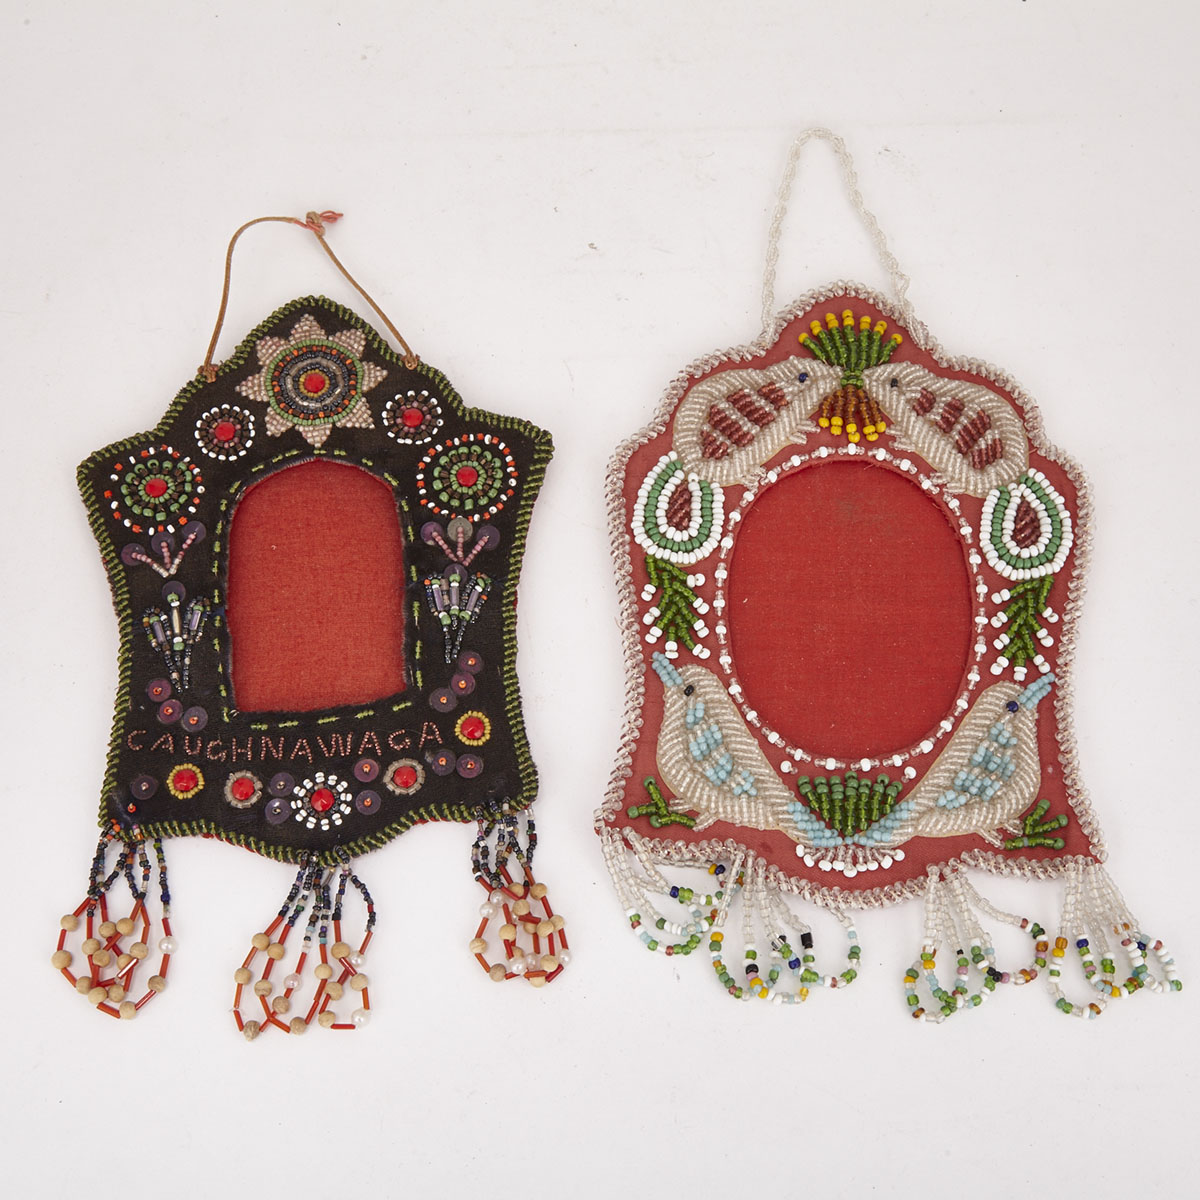 Two Iroquois Beaded Frames, early 20th century